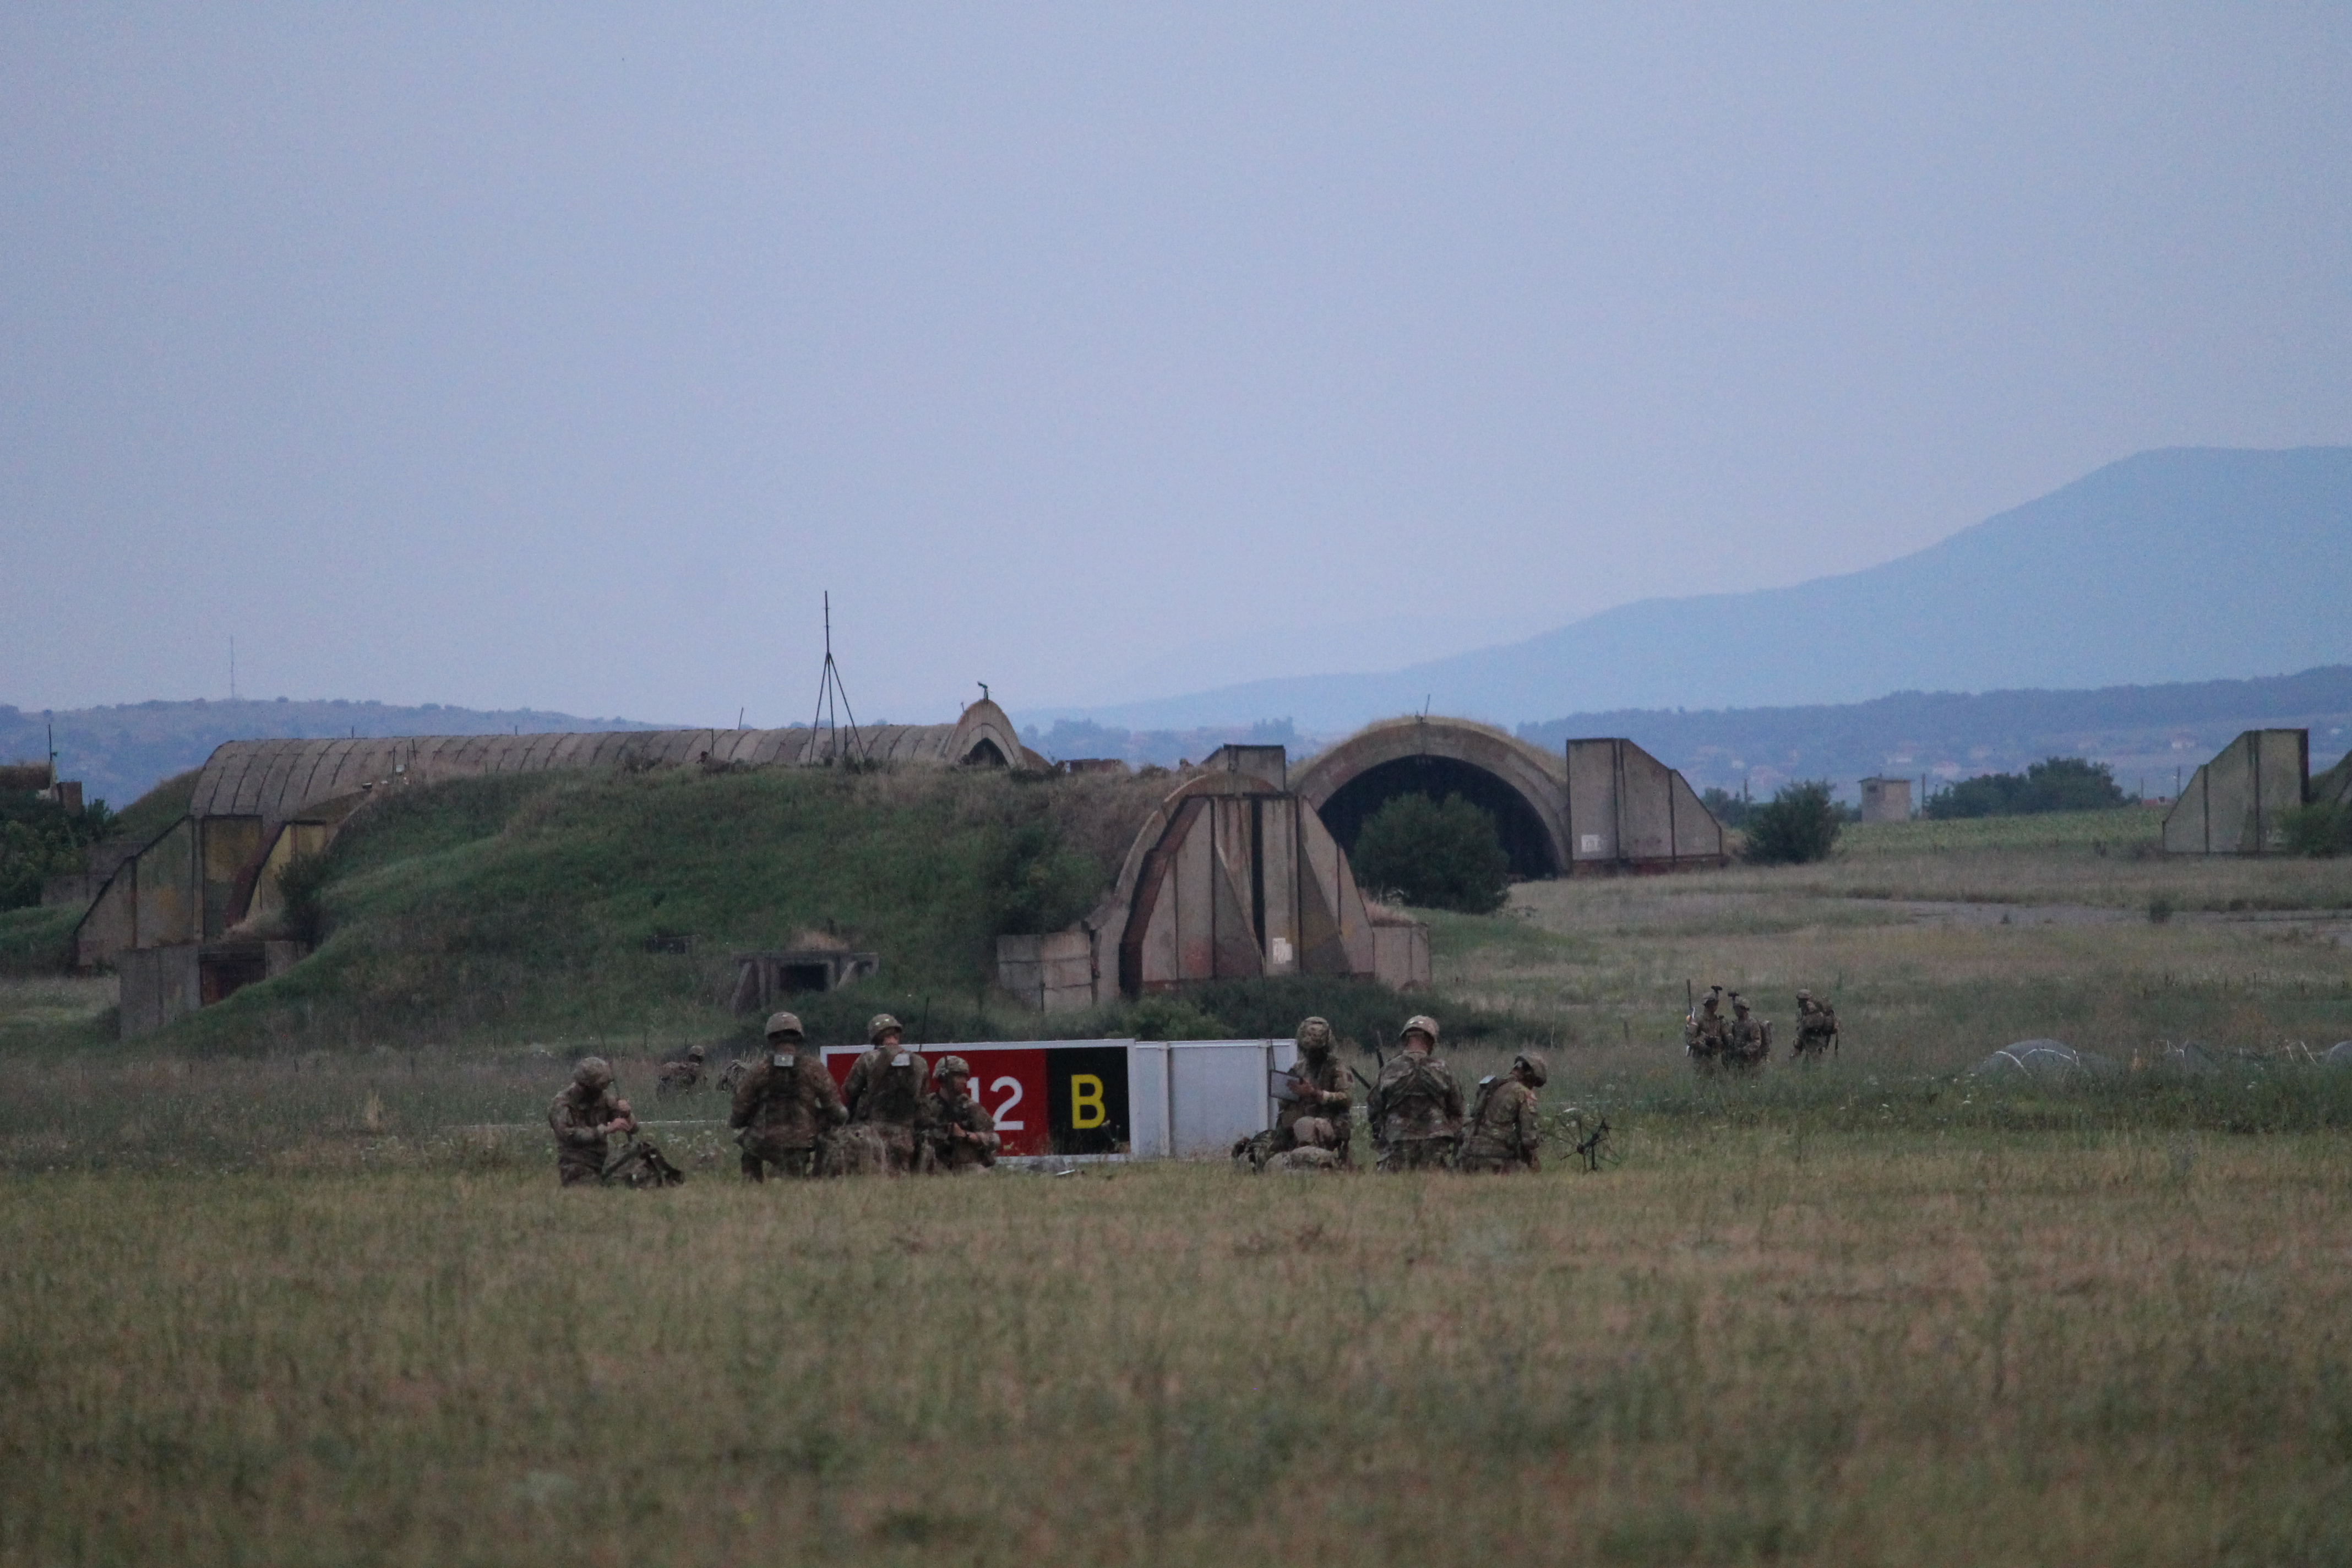 Paratroopers collect on the ground at the perimeter of a series of airplane hangars that collectively look like a hobbit shire. The opposition forces, played by Bulgarian soldiers, sporadically fired at the paratroopers. In a real operation, paratroopers would not land directly in front of the enemy, but for the purposes of observing, everything is designed to happen in close proximity. (Jen Judson/Staff)